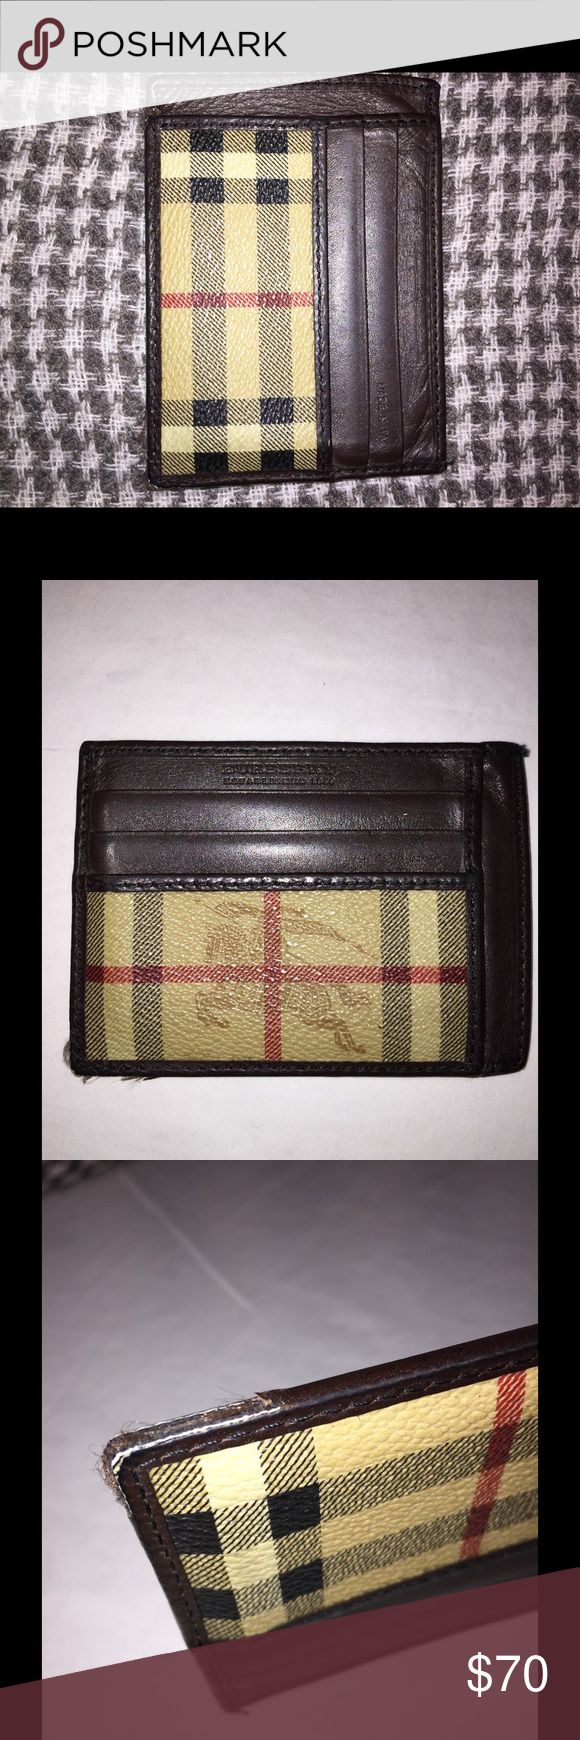 Burberry Men's Wallet Card Holder Super thin. Credit card case holder. Good condition. Opening in center for cash. Has some wear on one of the corners as shown in pics. Burberry Accessories